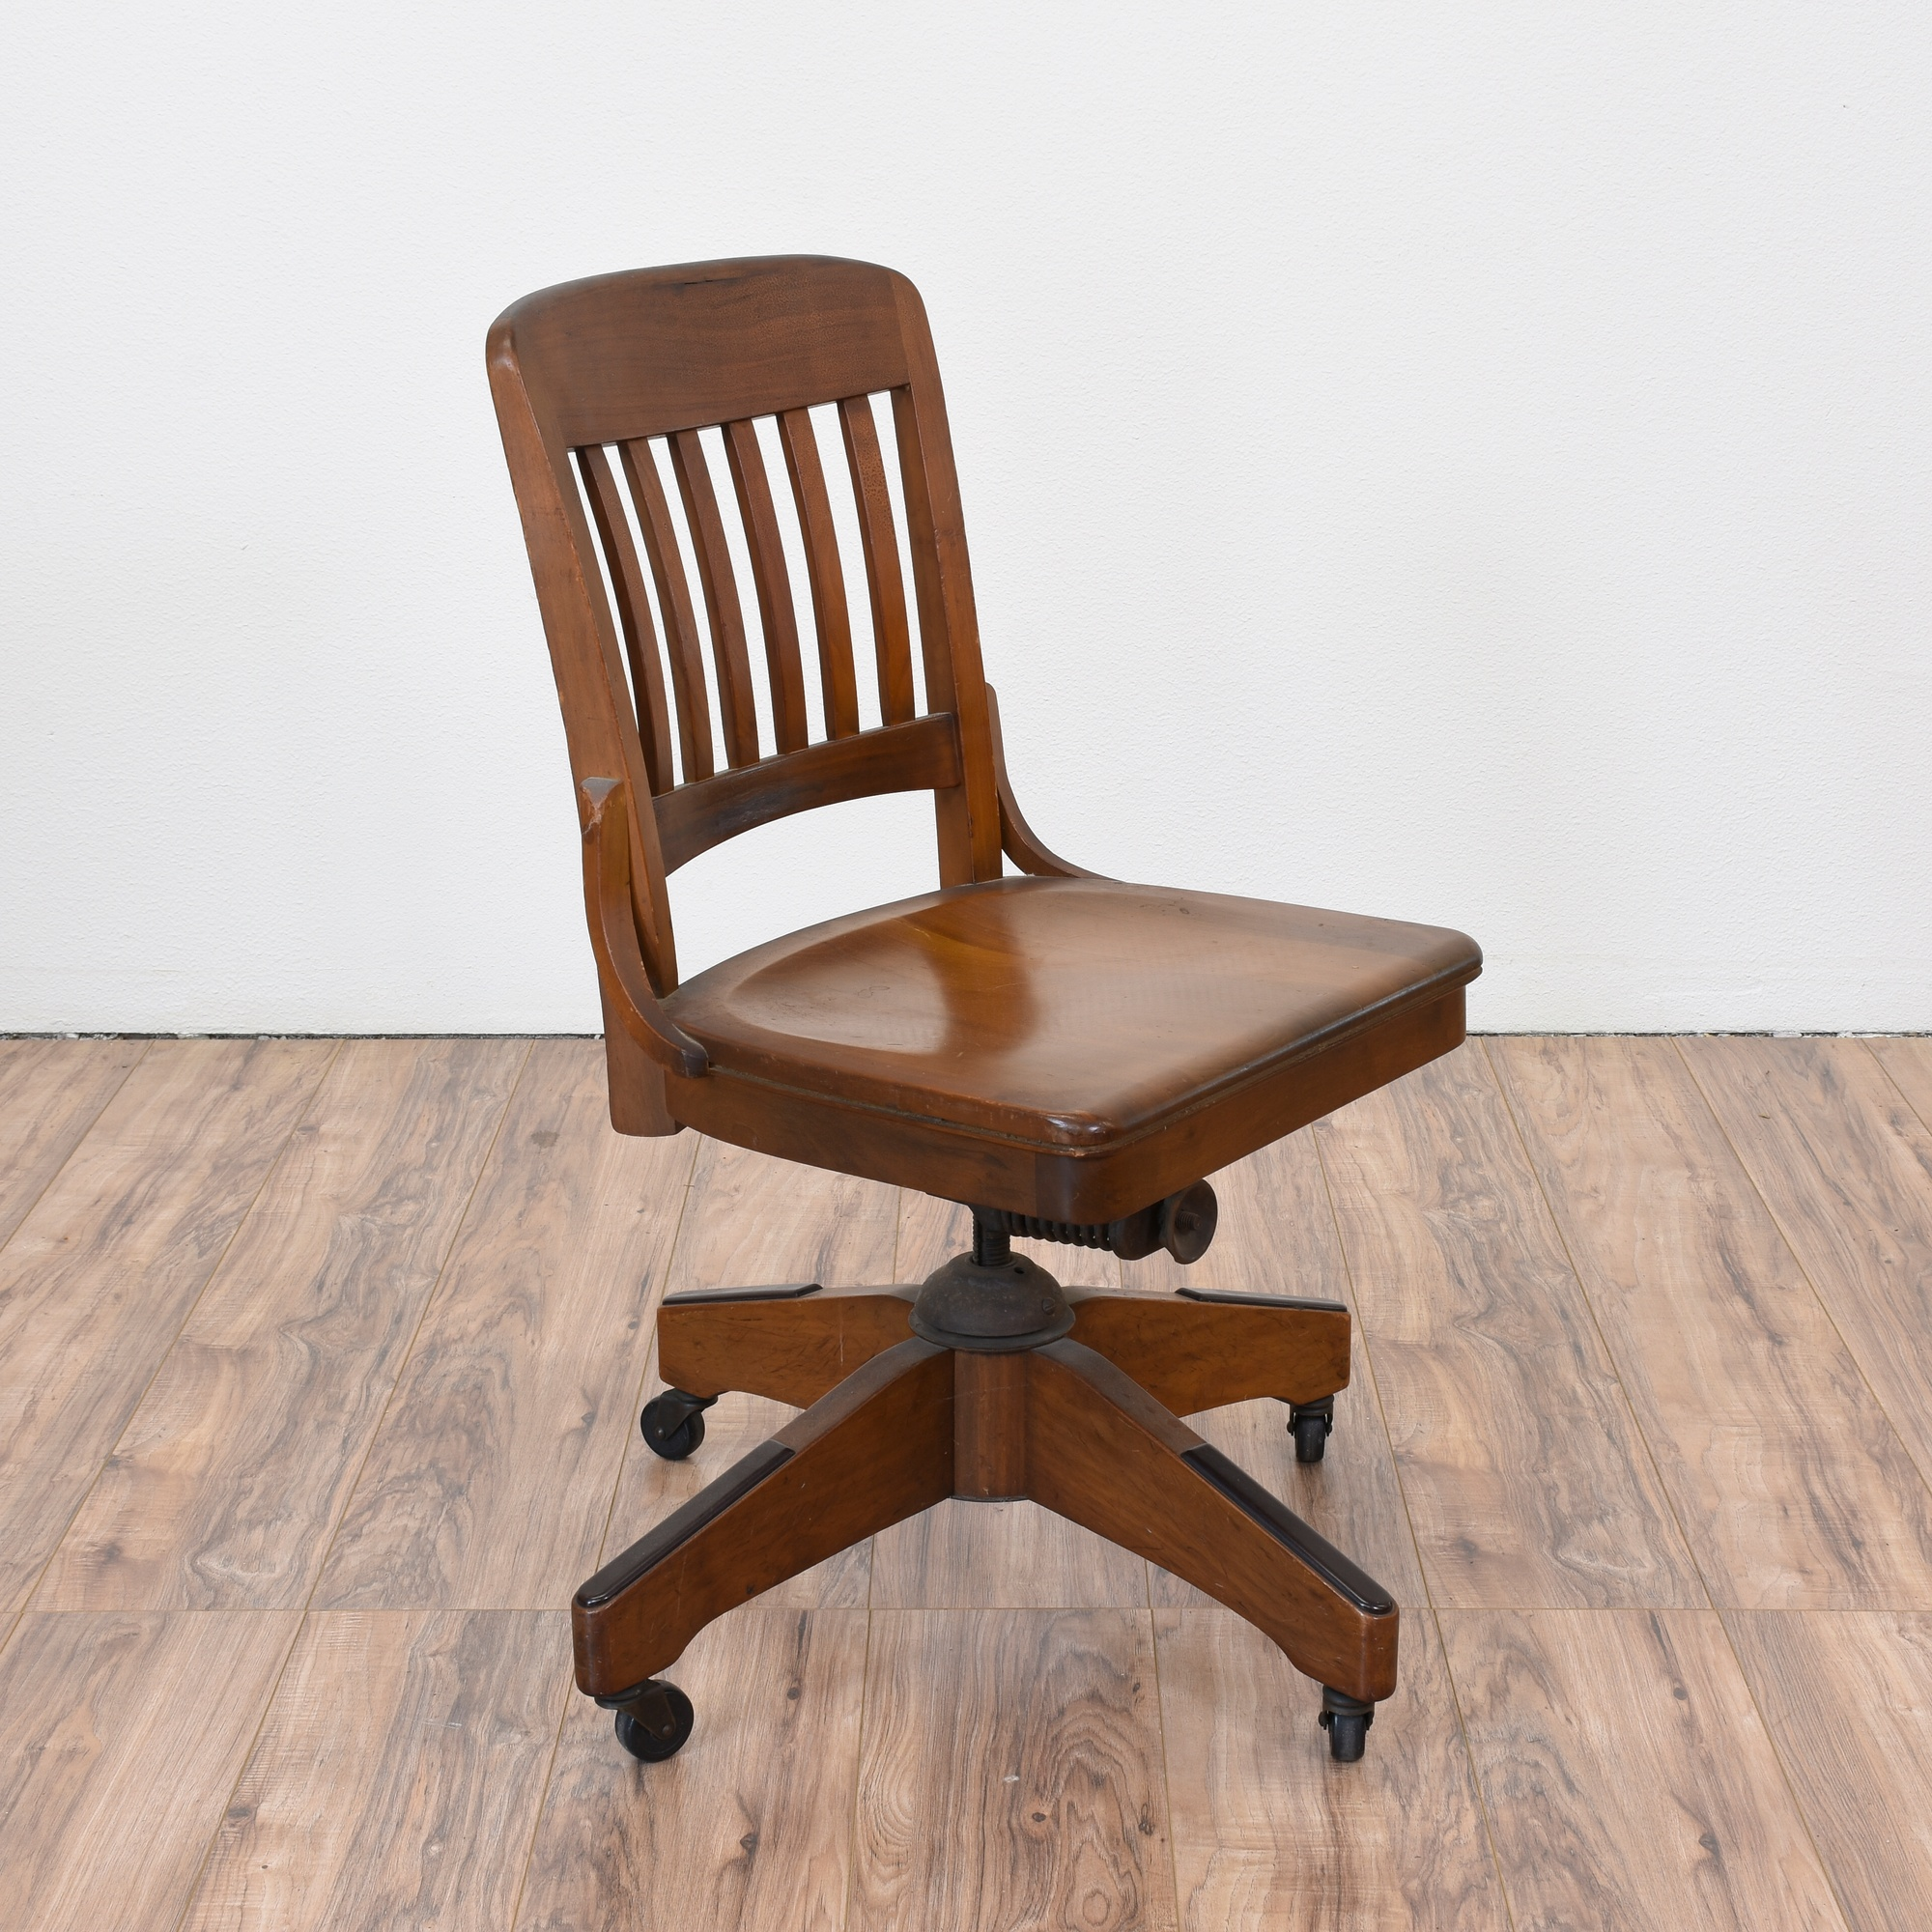 Solid Wood Office Chair W/ Casters